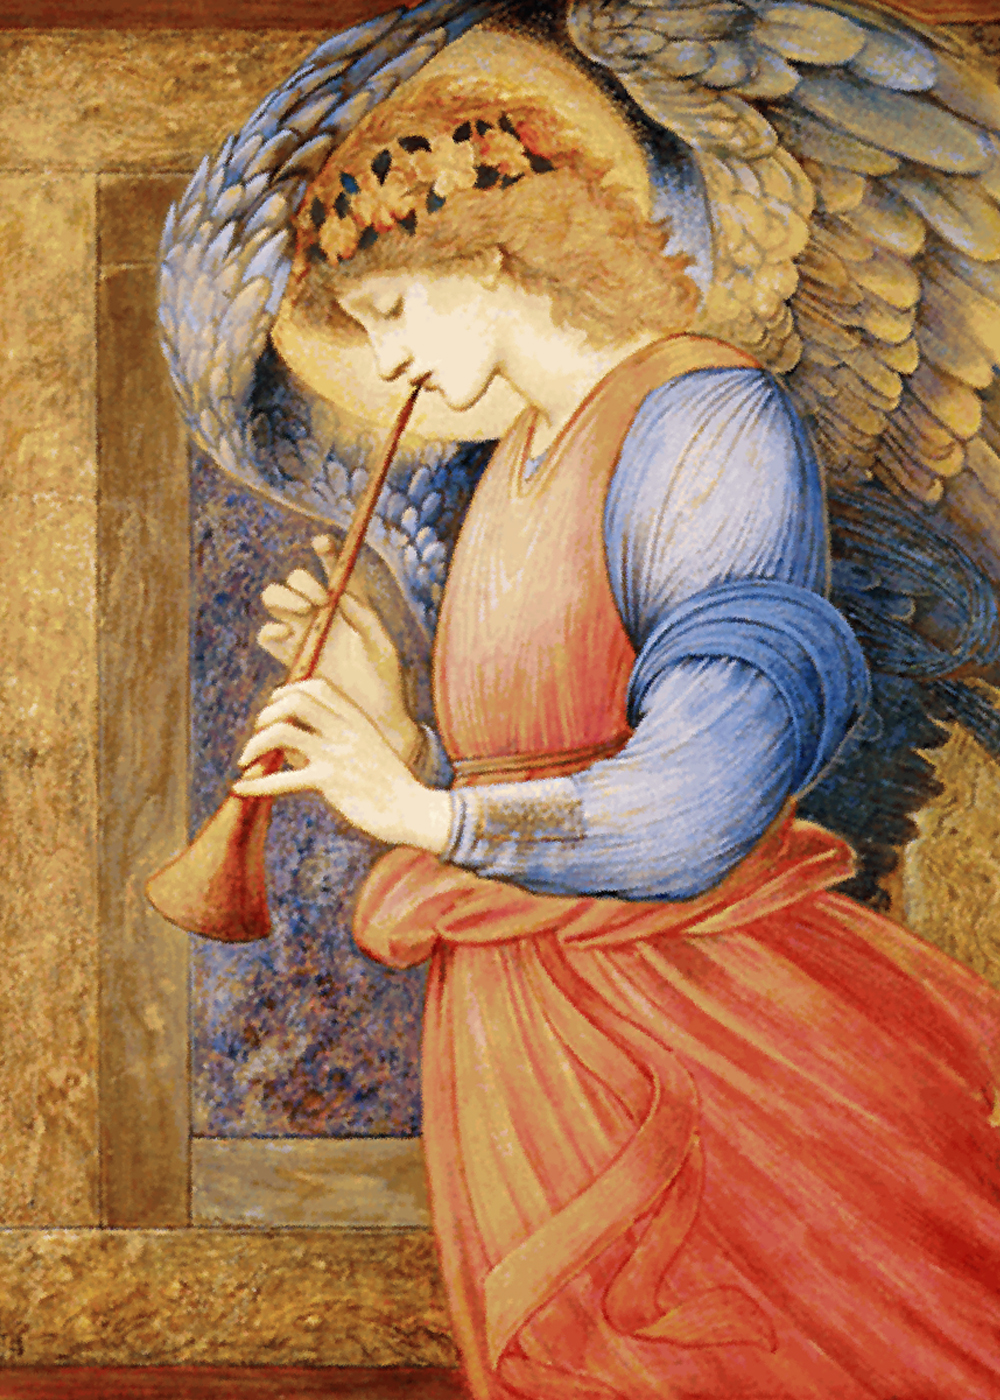 https://i1.wp.com/upload.wikimedia.org/wikipedia/commons/d/d4/Edward_Burne-Jones_-_An_Angel_Playing_a_Flageolet.jpg